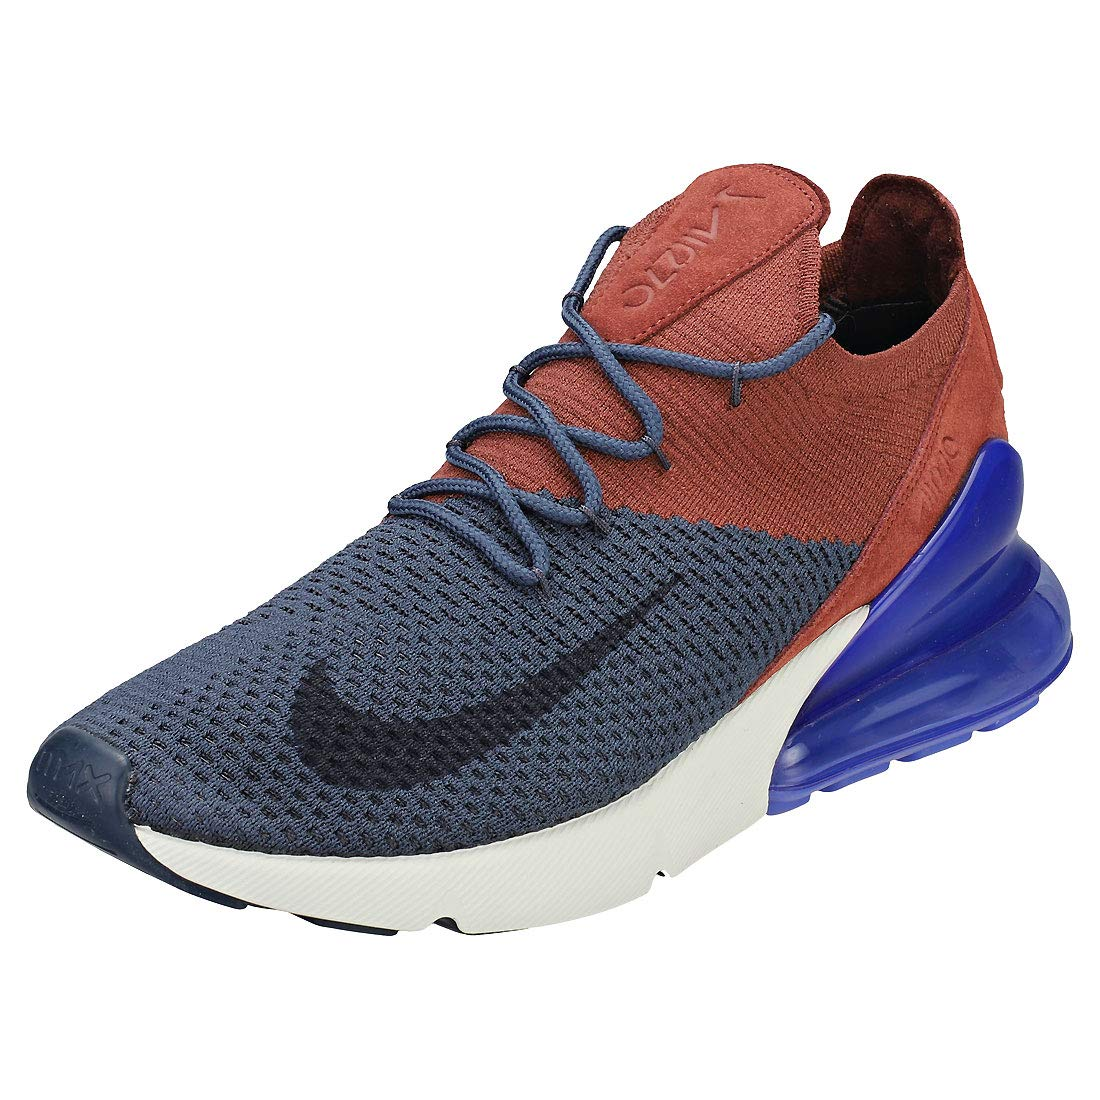 NIKE Air Max 270 Flyknit, Sneakers Basses Homme 42.5 Sepia EU|Multicolore (Thunder Blue/Gridiron/Red Sepia 42.5 001) 084745